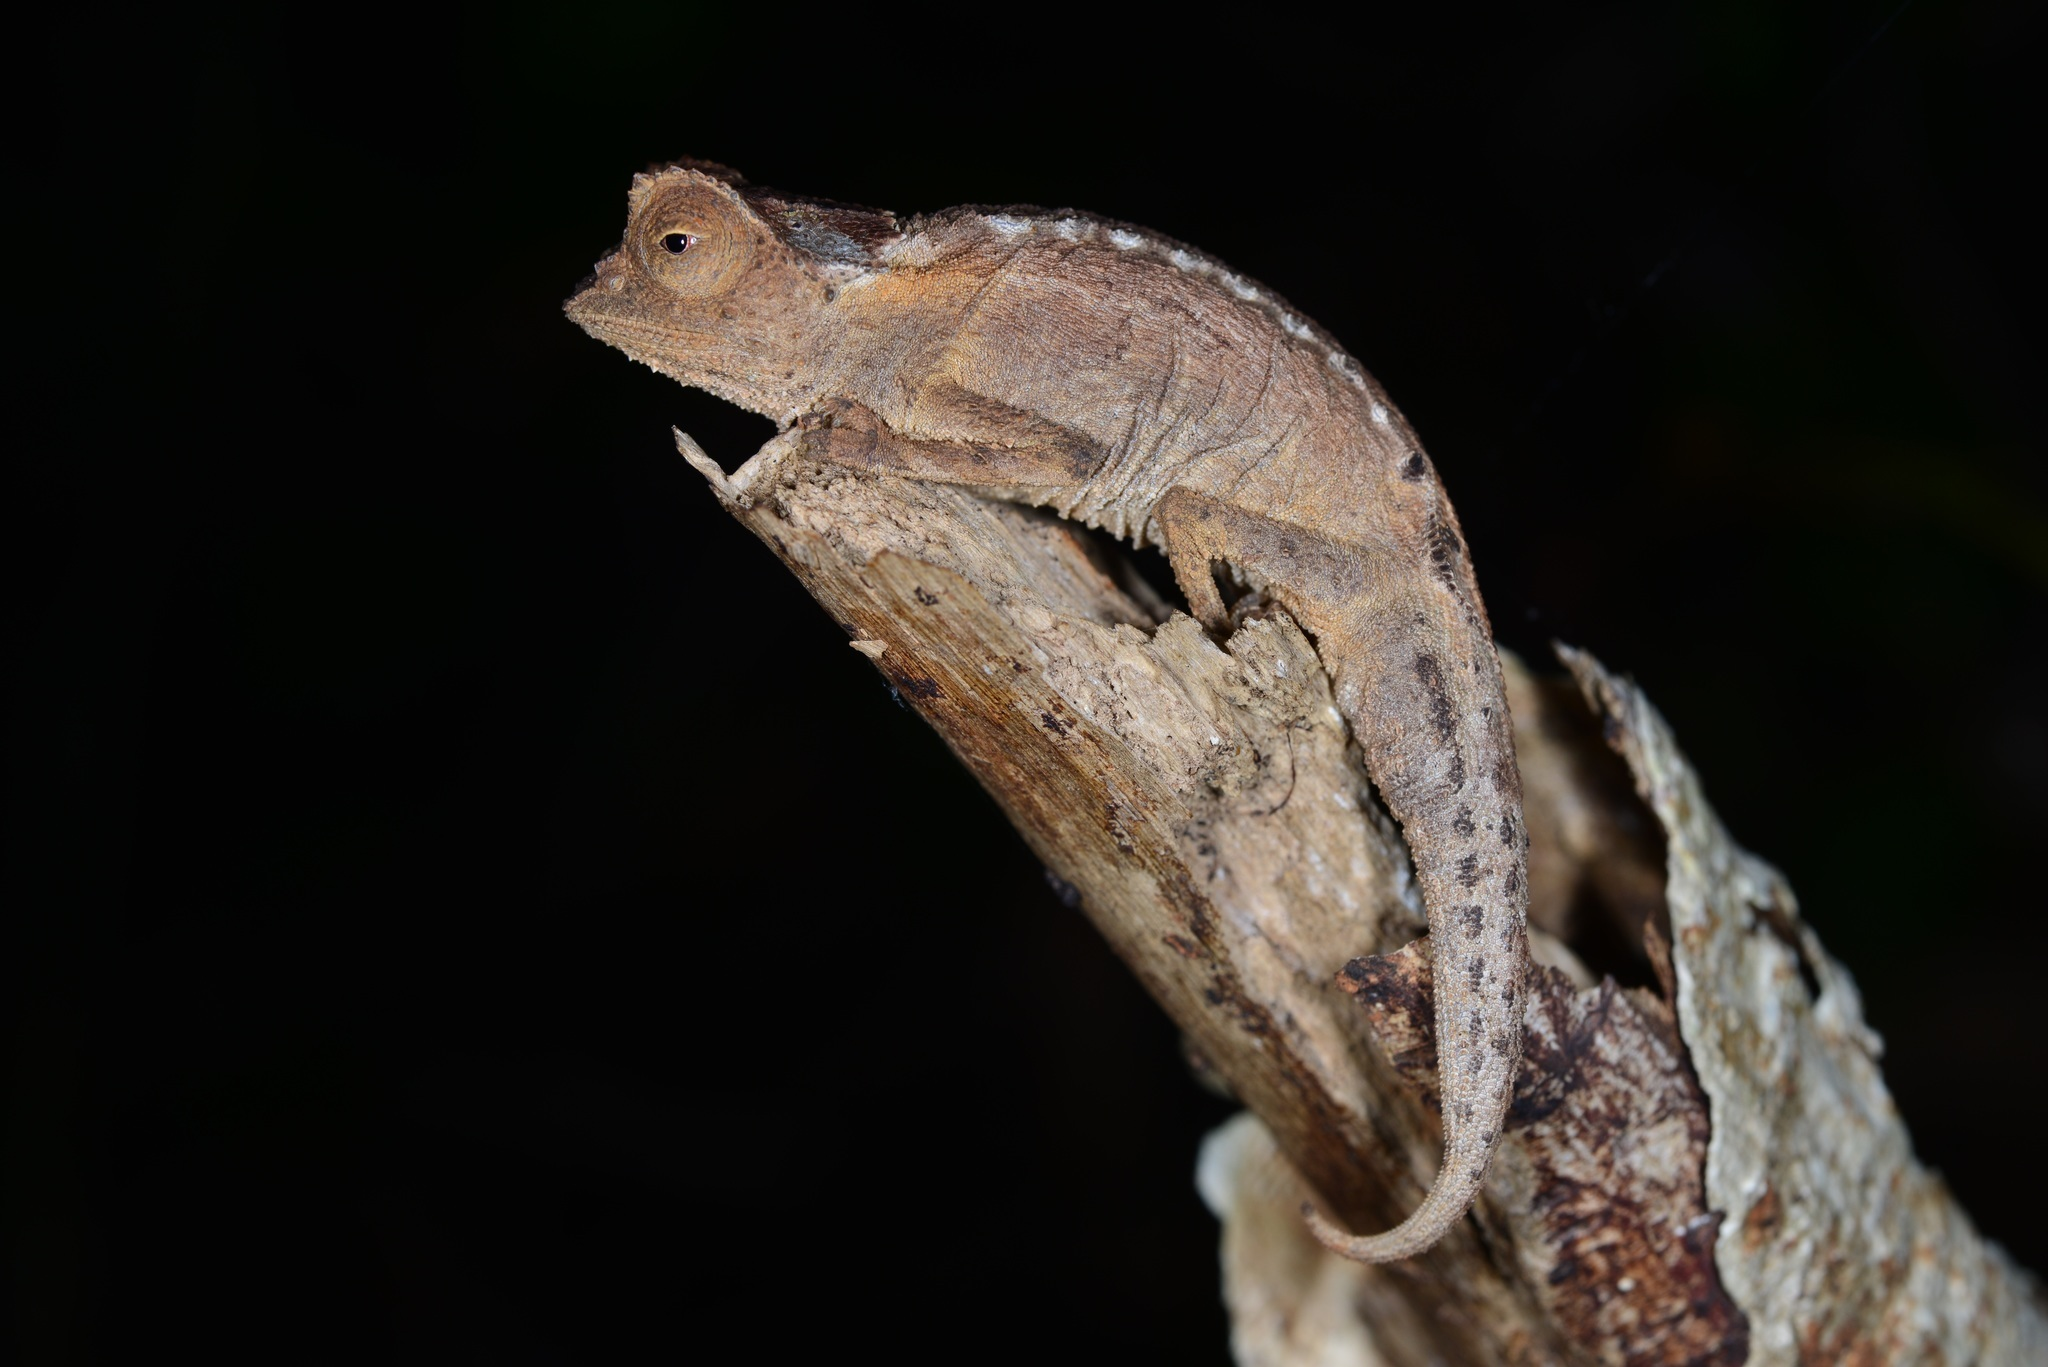 Image of Plated Leaf Chameleon